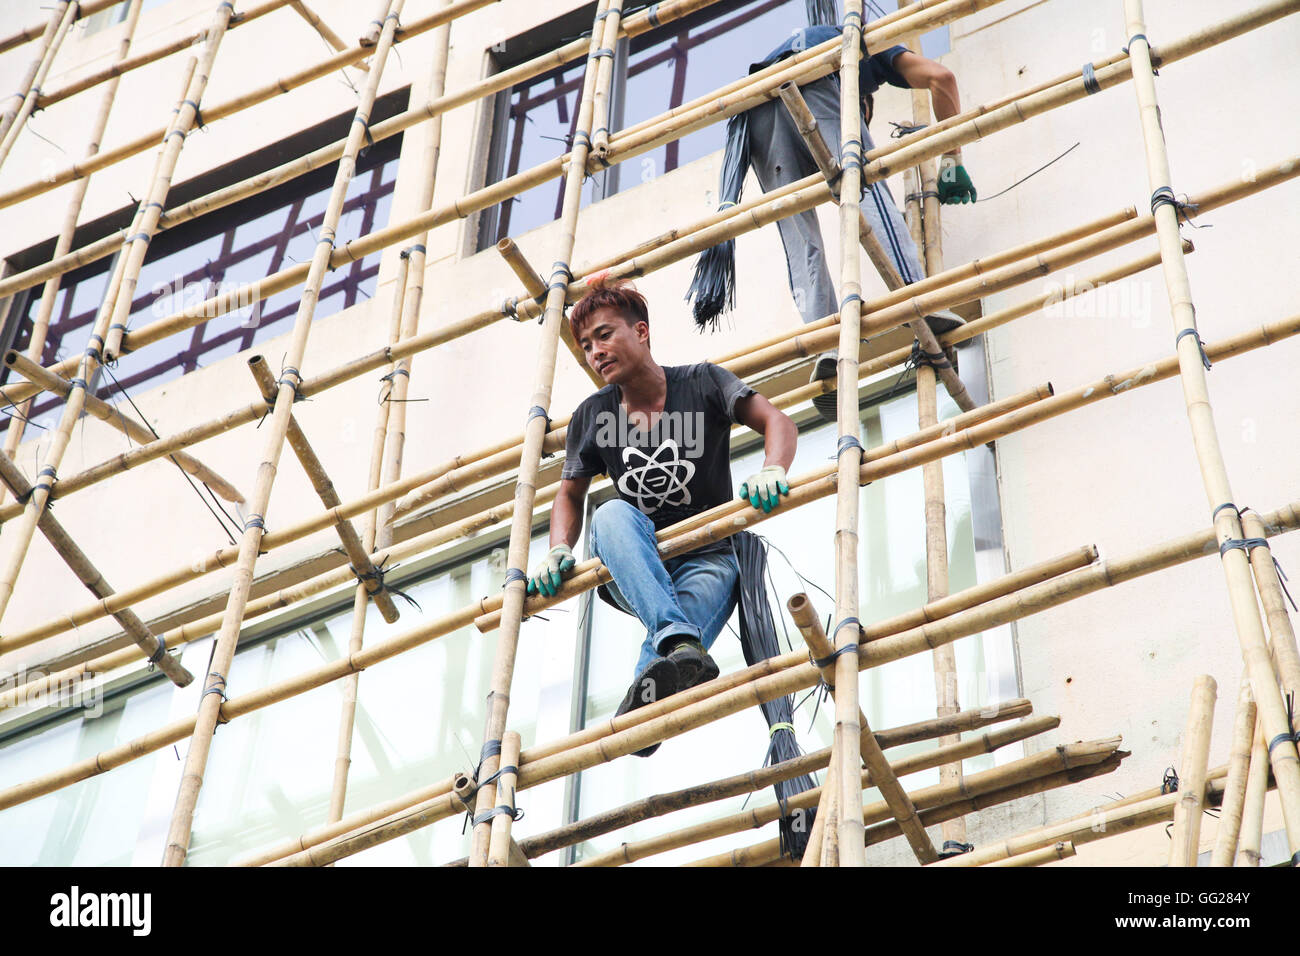 Chinese construction workers on bamboo scaffolding, Hong Kong, China - Stock Image